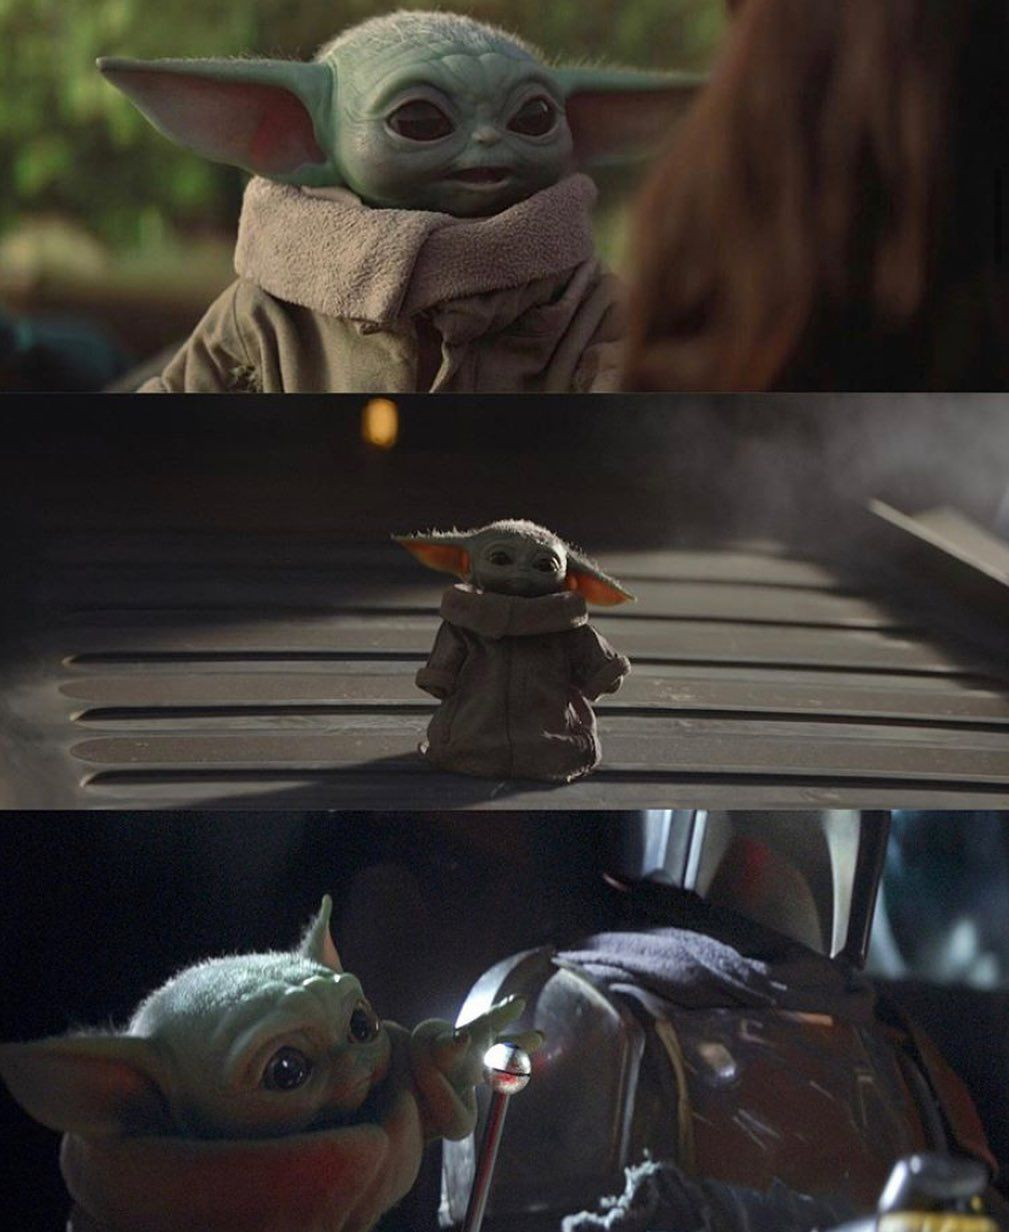 Pin by Missy Berry on baby yoda. in 2020 Yoda wallpaper